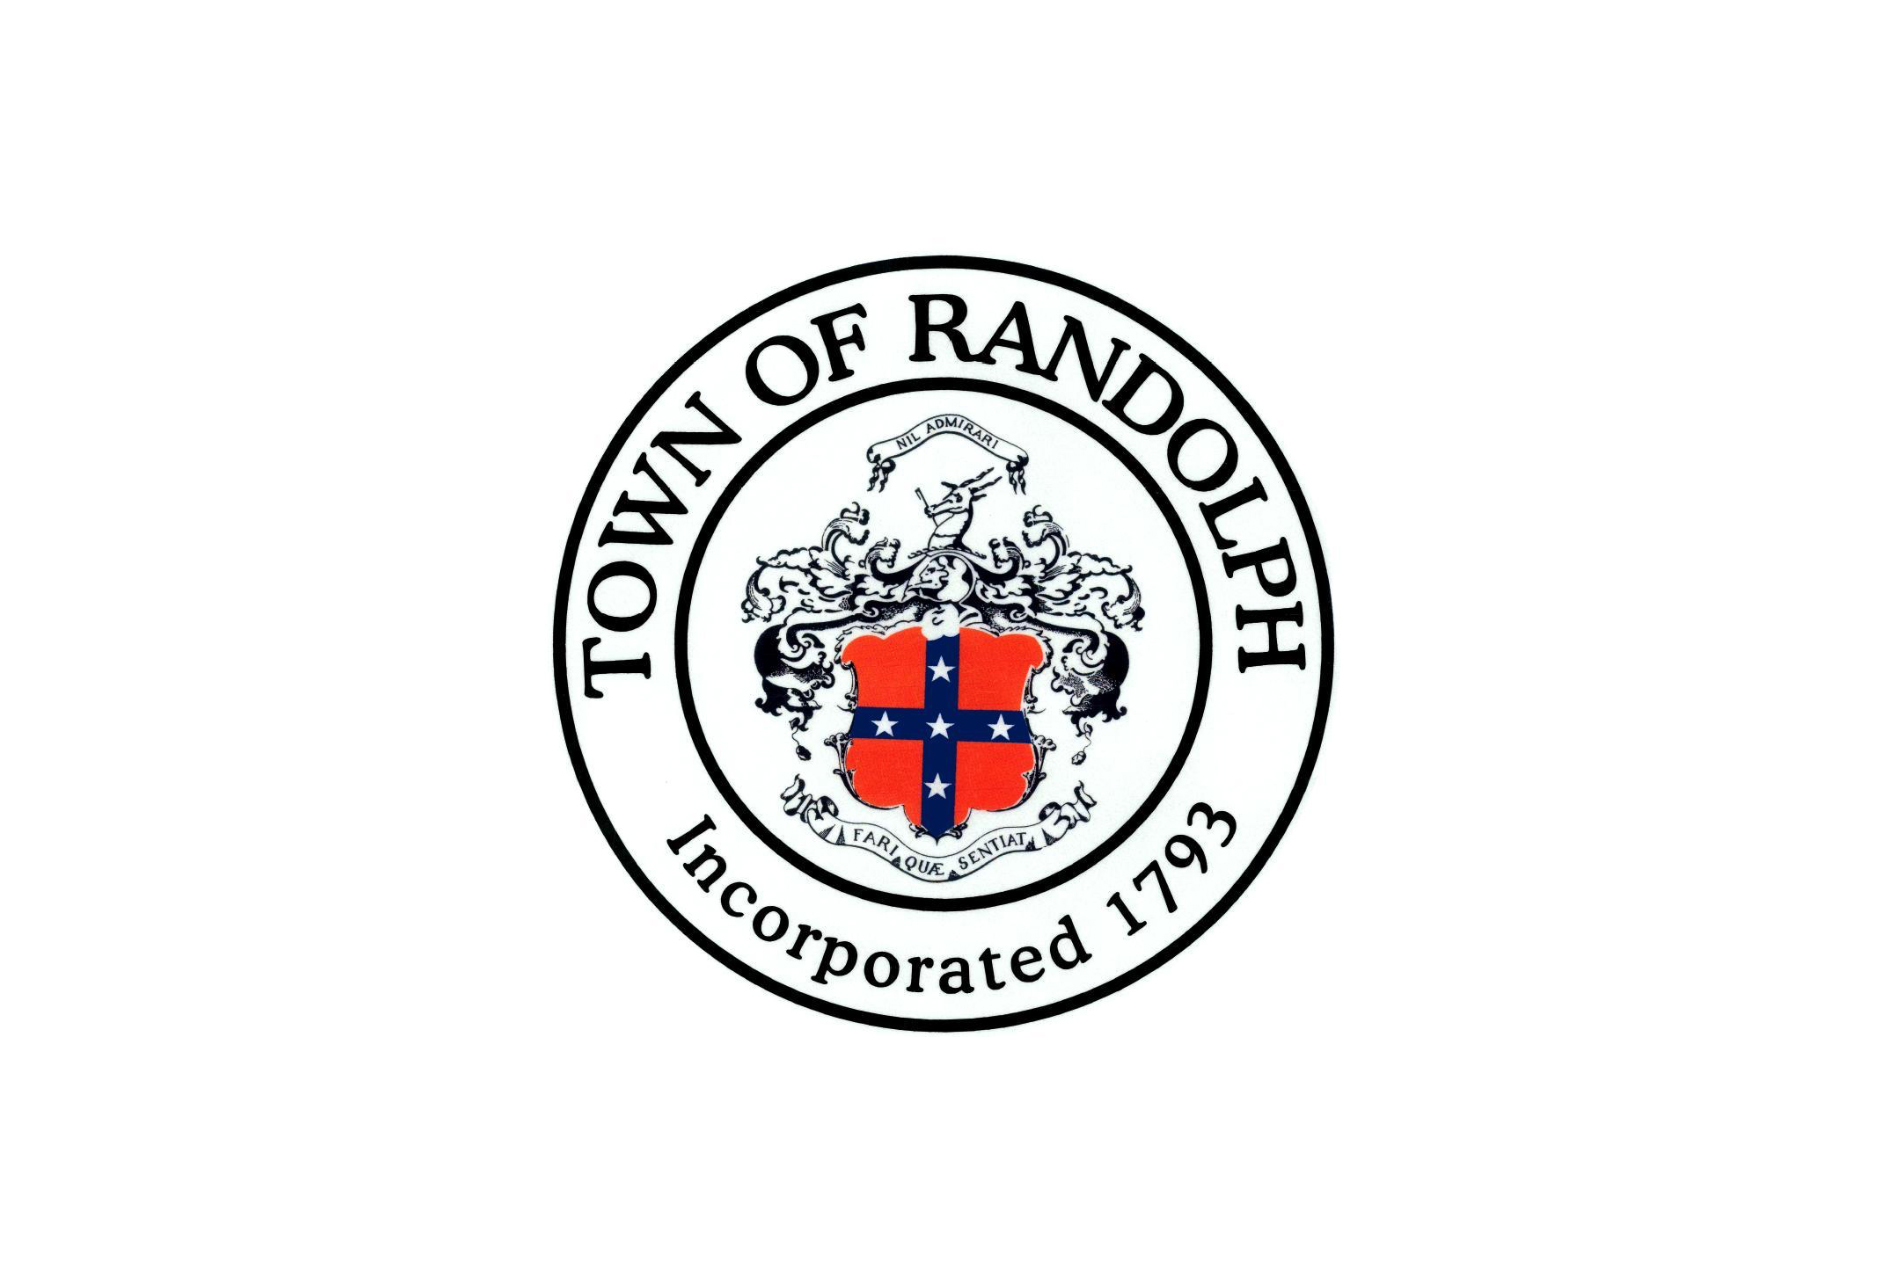 Randolph, Mass. Joins Tobacco21 Movement with Purchase Age